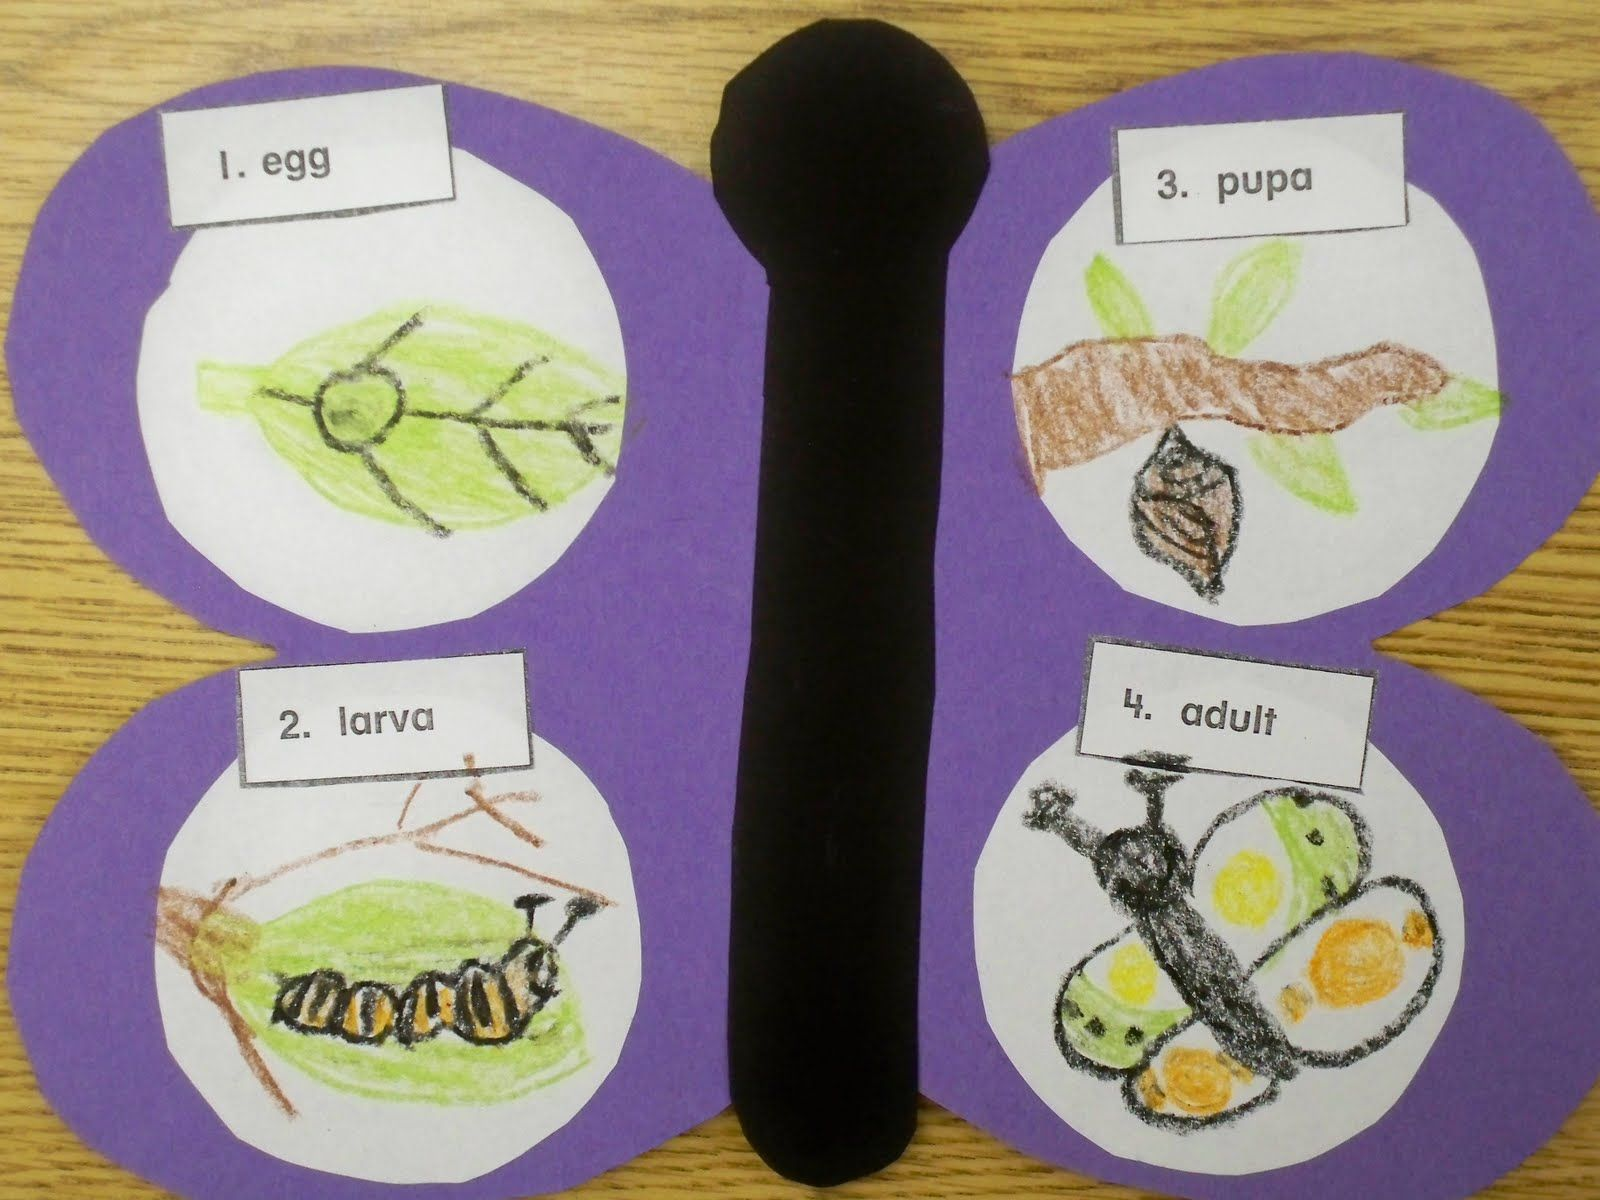 Here S A Terrific Idea For Representing The Life Cycle Of